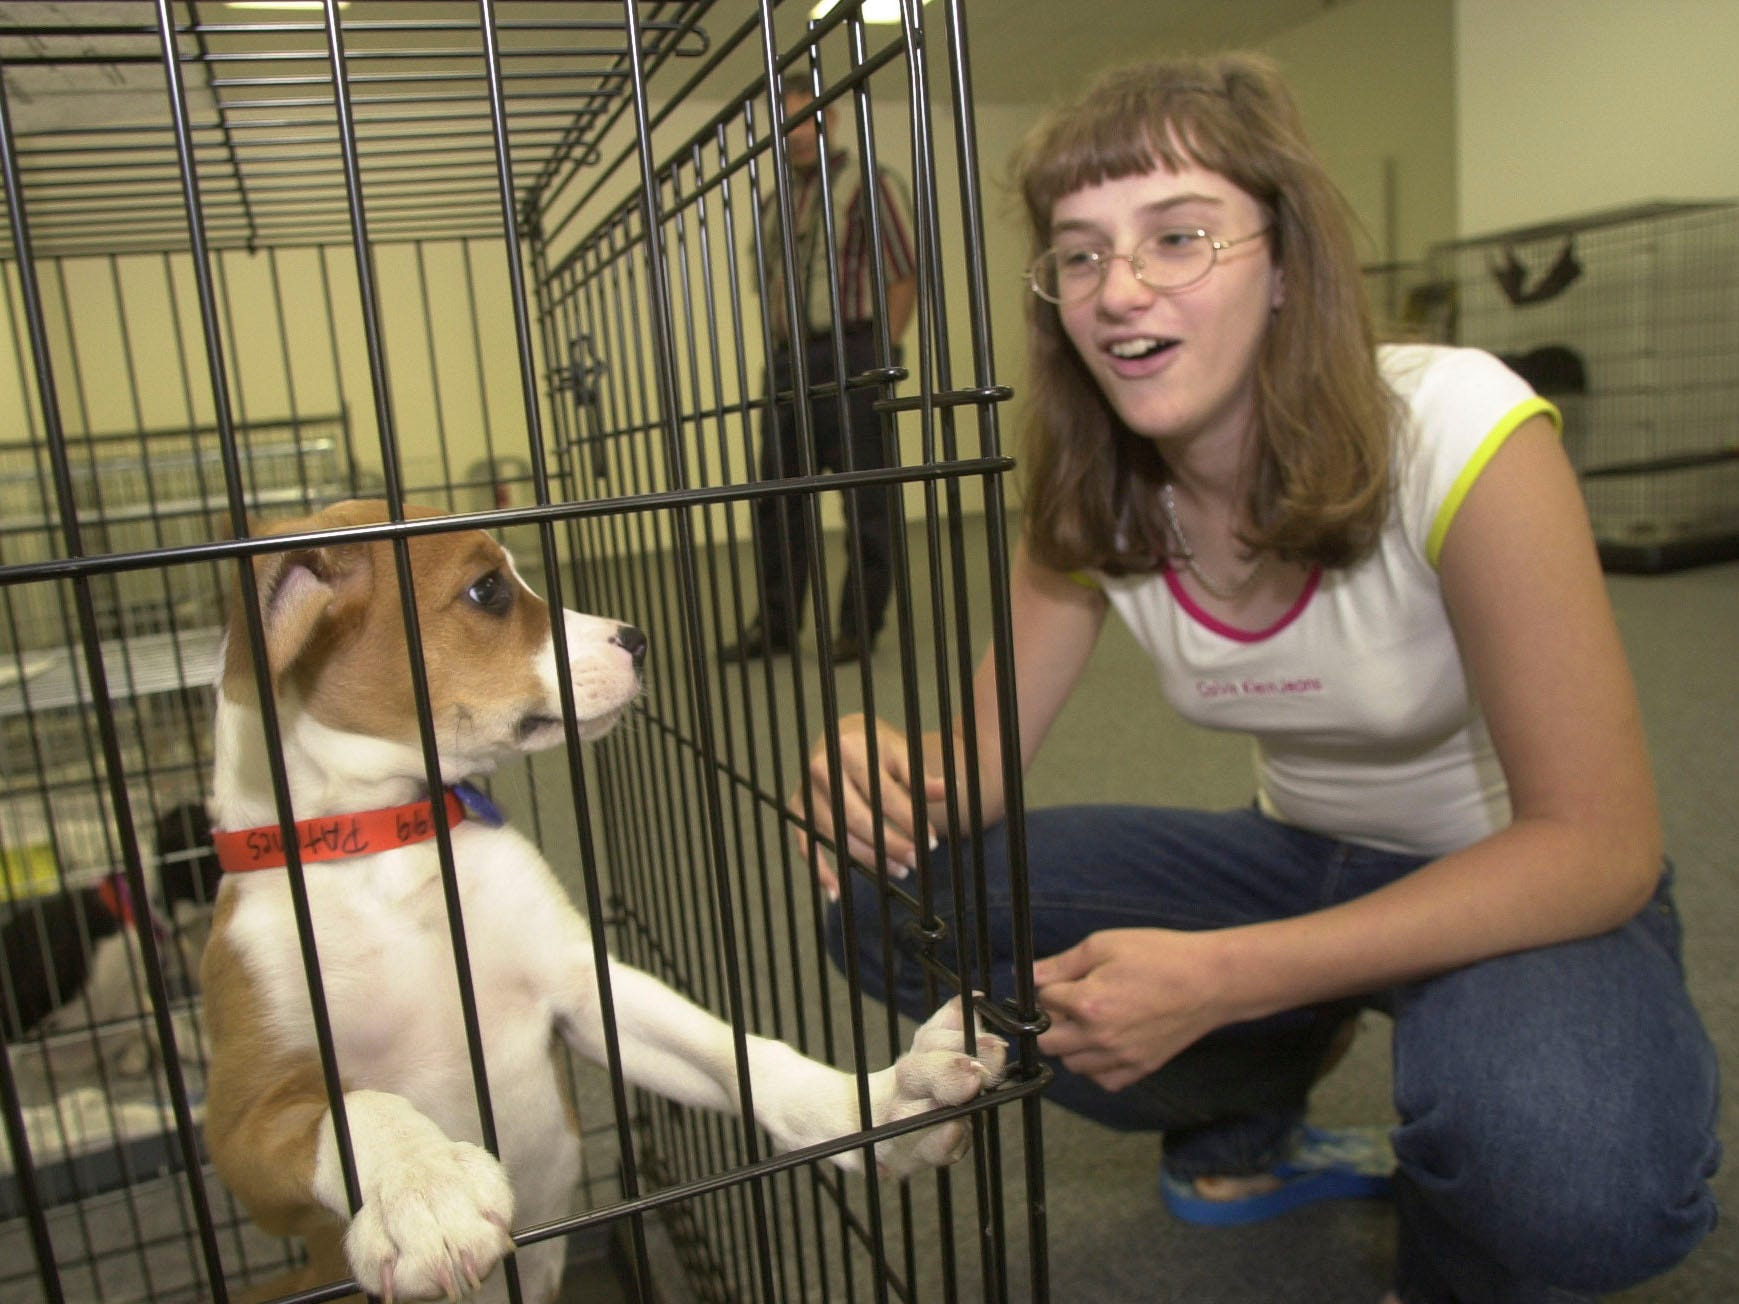 Nikkii Gervin, 13, meets a 12 week-old boxer-beagle mix named 'Patches' during  'Kroger Cares for Critters' pet adoption day Friday at Chapman Square, 4409 Chapman Highway. Kroger is partnering with the Humane Society of the Tennessee Valley in the two-day event which continues Saturday from 11am to 7pm. Pets can also be brought in to be microchipped, a high-tech way to permanently identify a animal